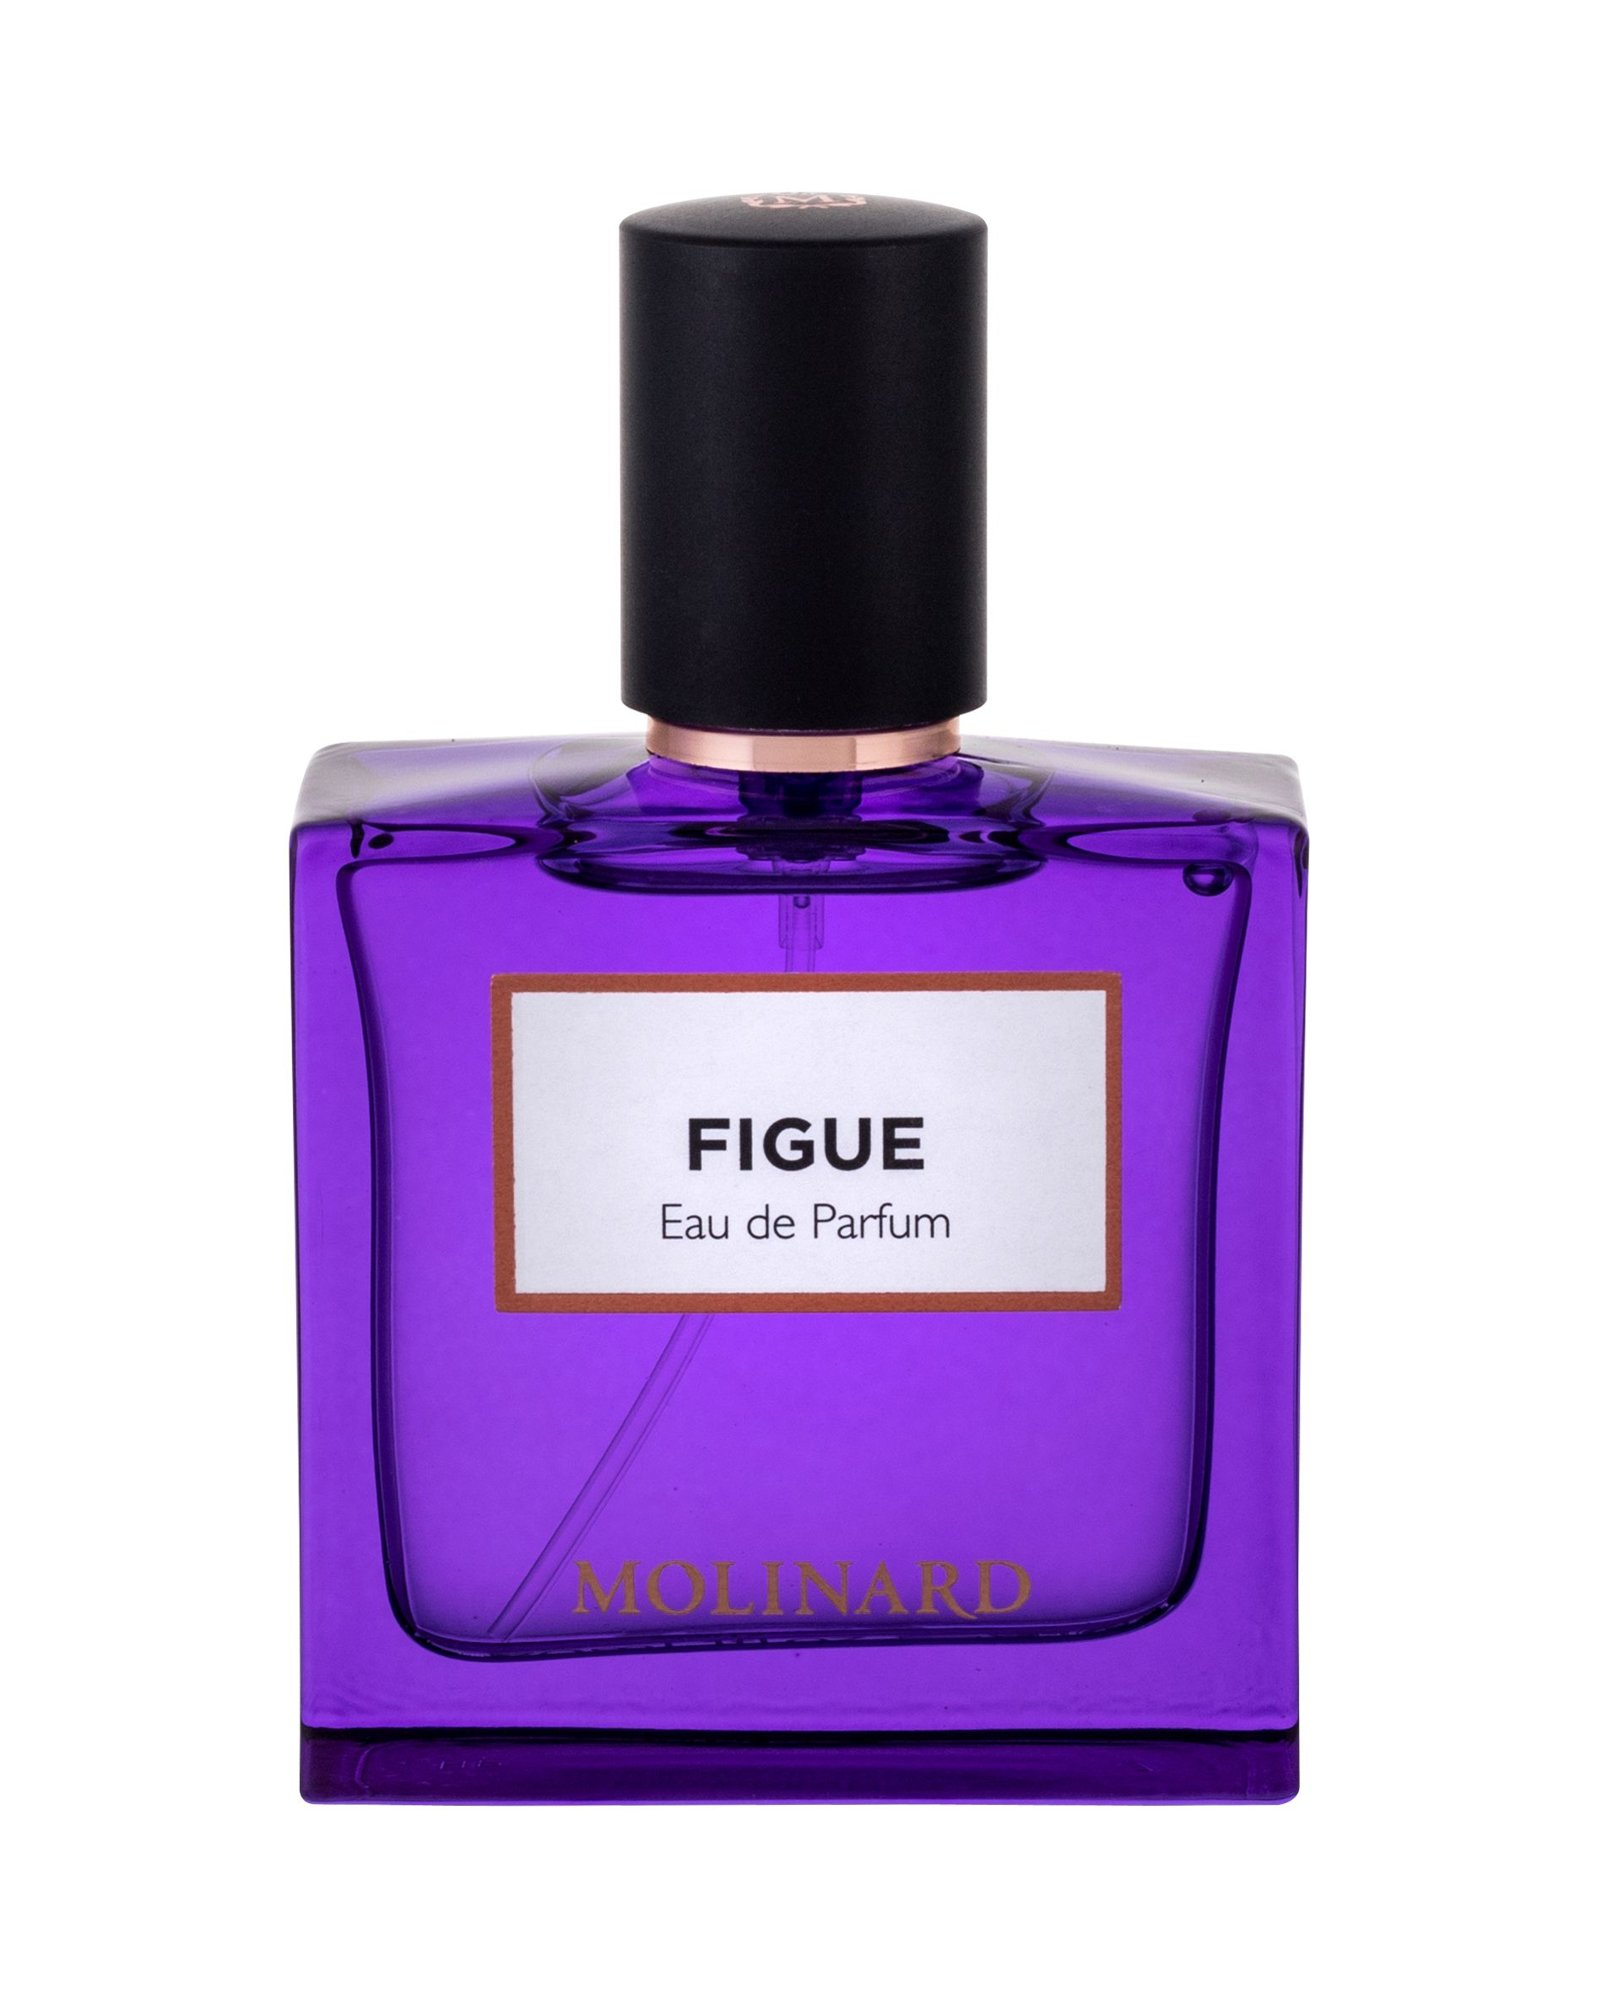 Molinard Les Elements Collection Figue Eau de Parfum 30ml